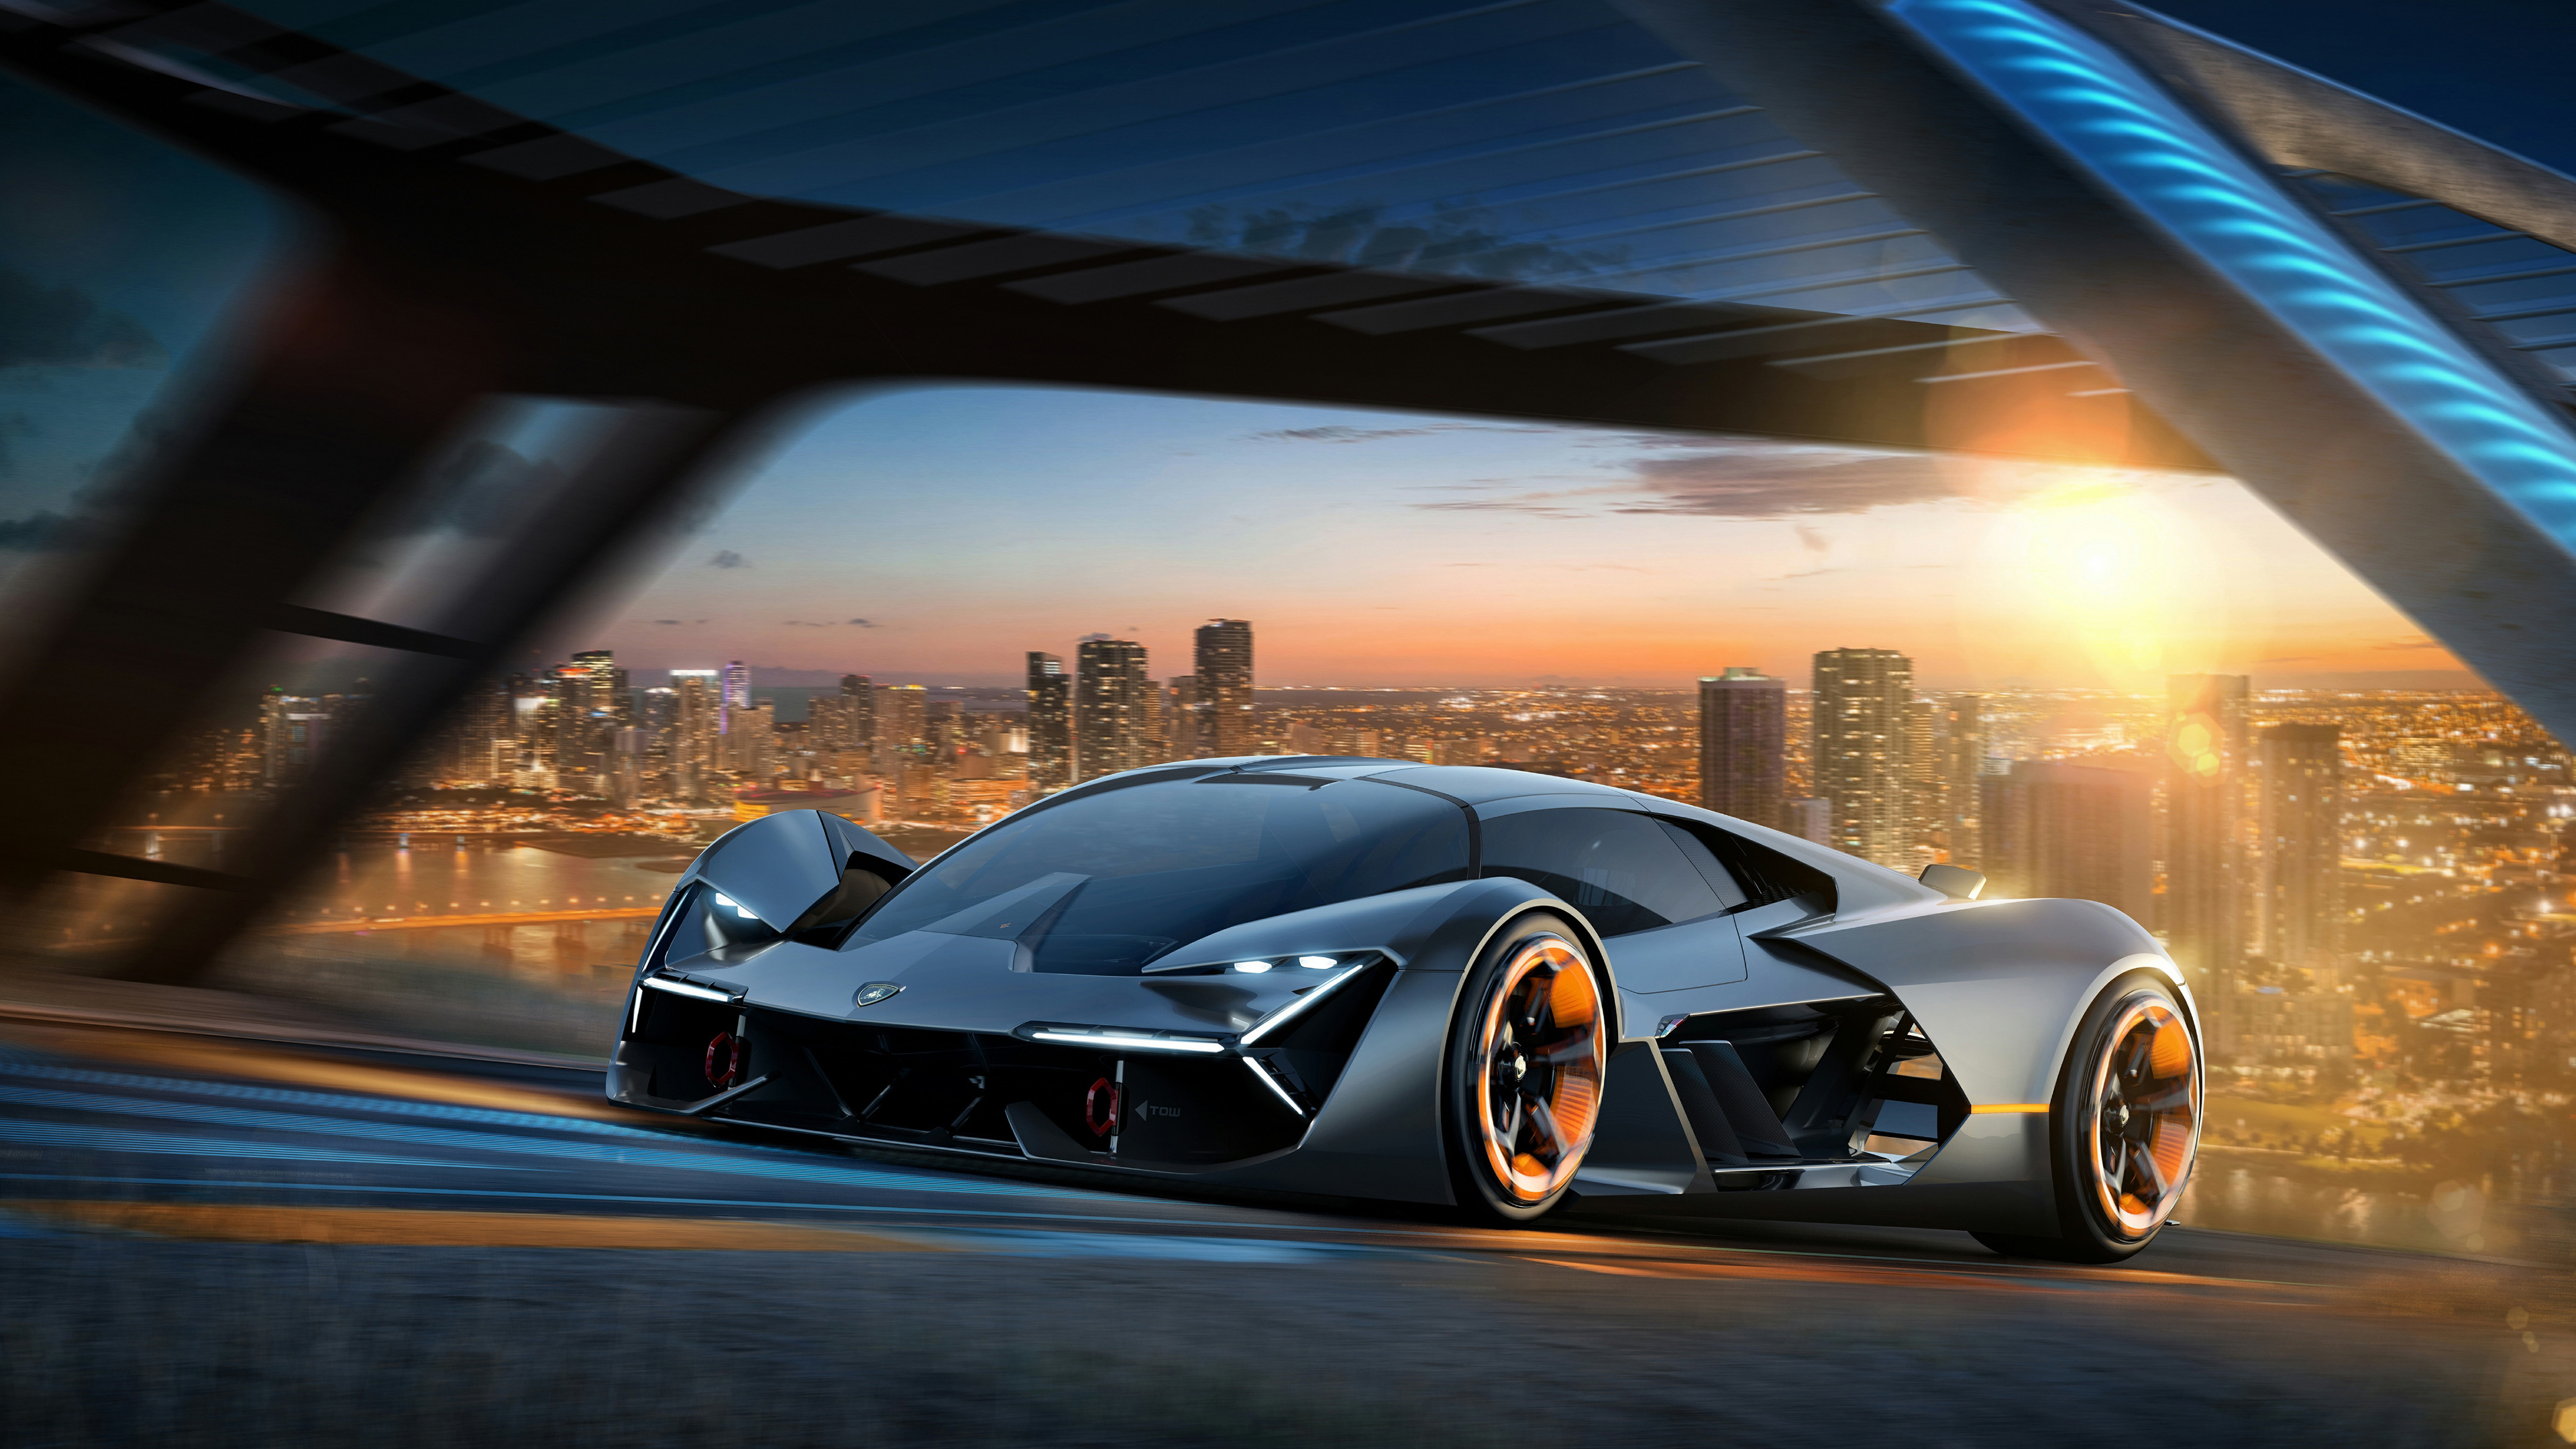 lamborghini terzo millennio 2017 1539107871 - Lamborghini Terzo Millennio 2017 - lamborghini wallpapers, lamborghini terzo millennio wallpapers, hd-wallpapers, electric cars wallpapers, concept cars wallpapers, 4k-wallpapers, 2017 cars wallpapers